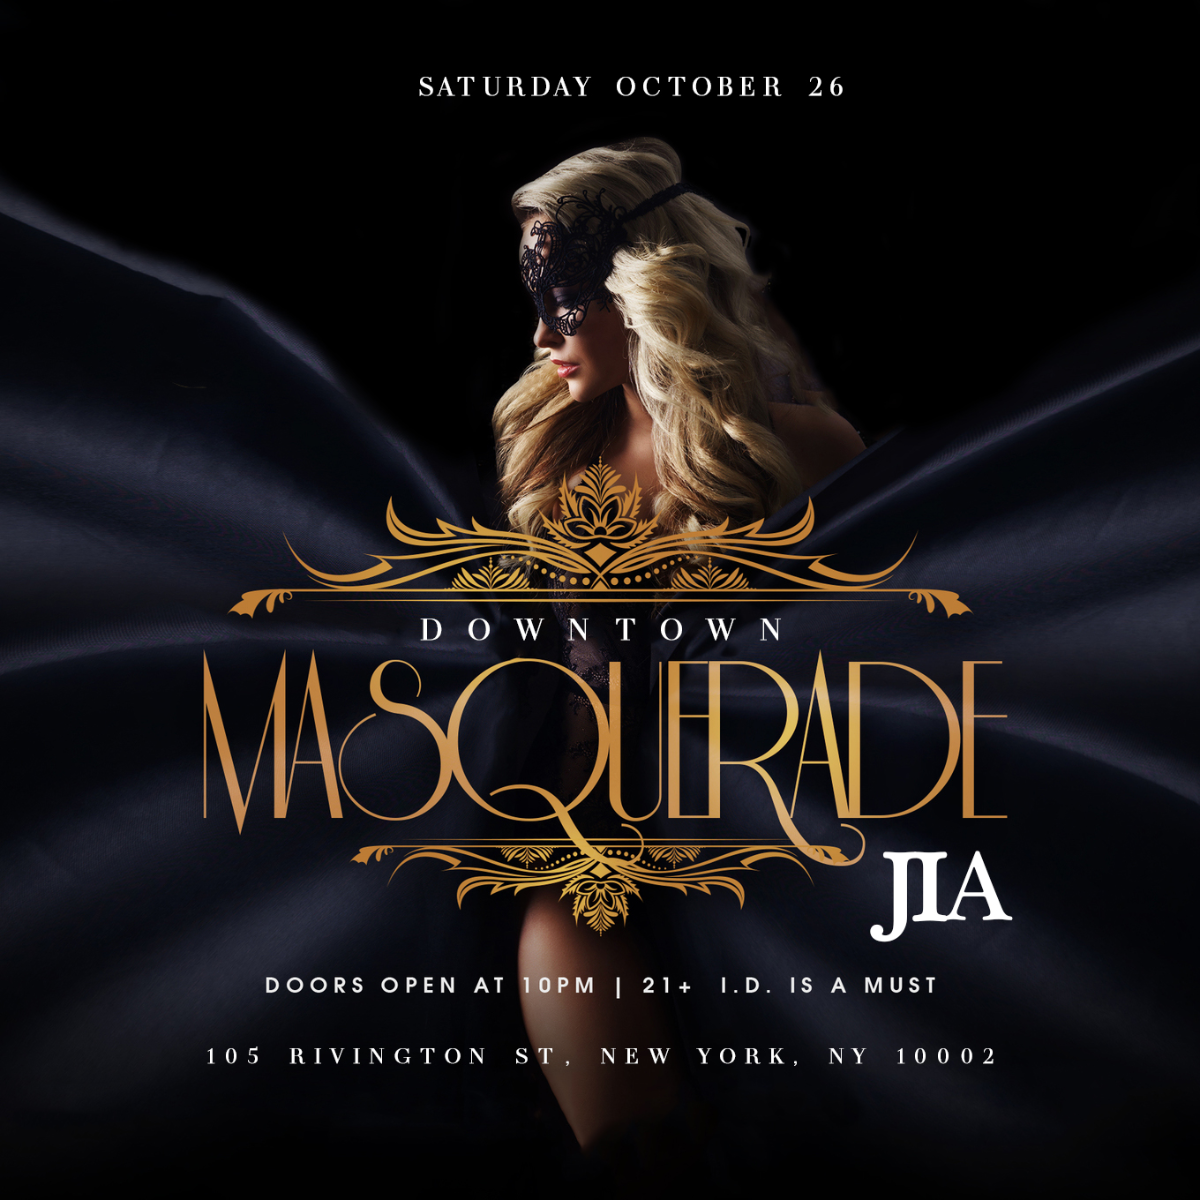 Halloween Masquerade Party at JIA Lounge